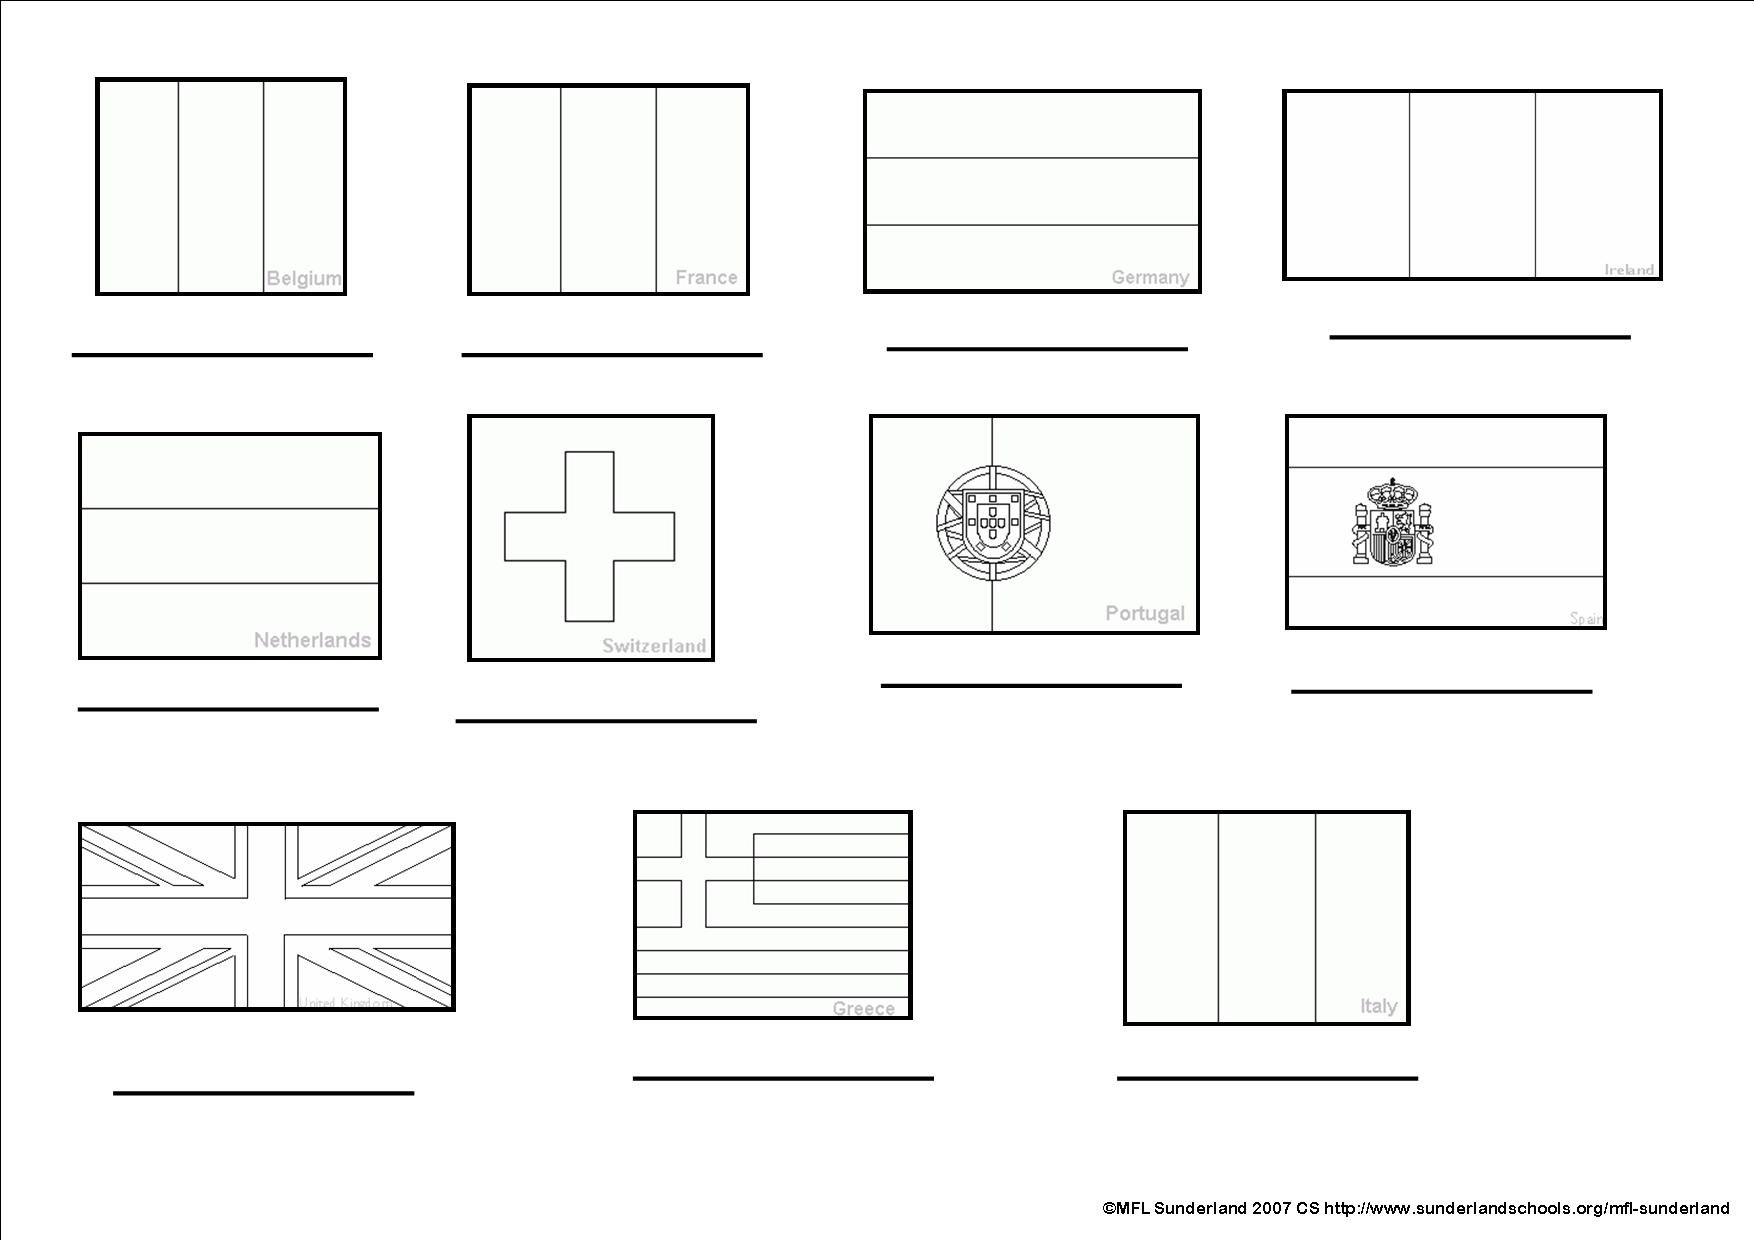 worksheet Spanish Math Worksheets spanish ks3 worksheets flags to colour in and label jpg 124 kb